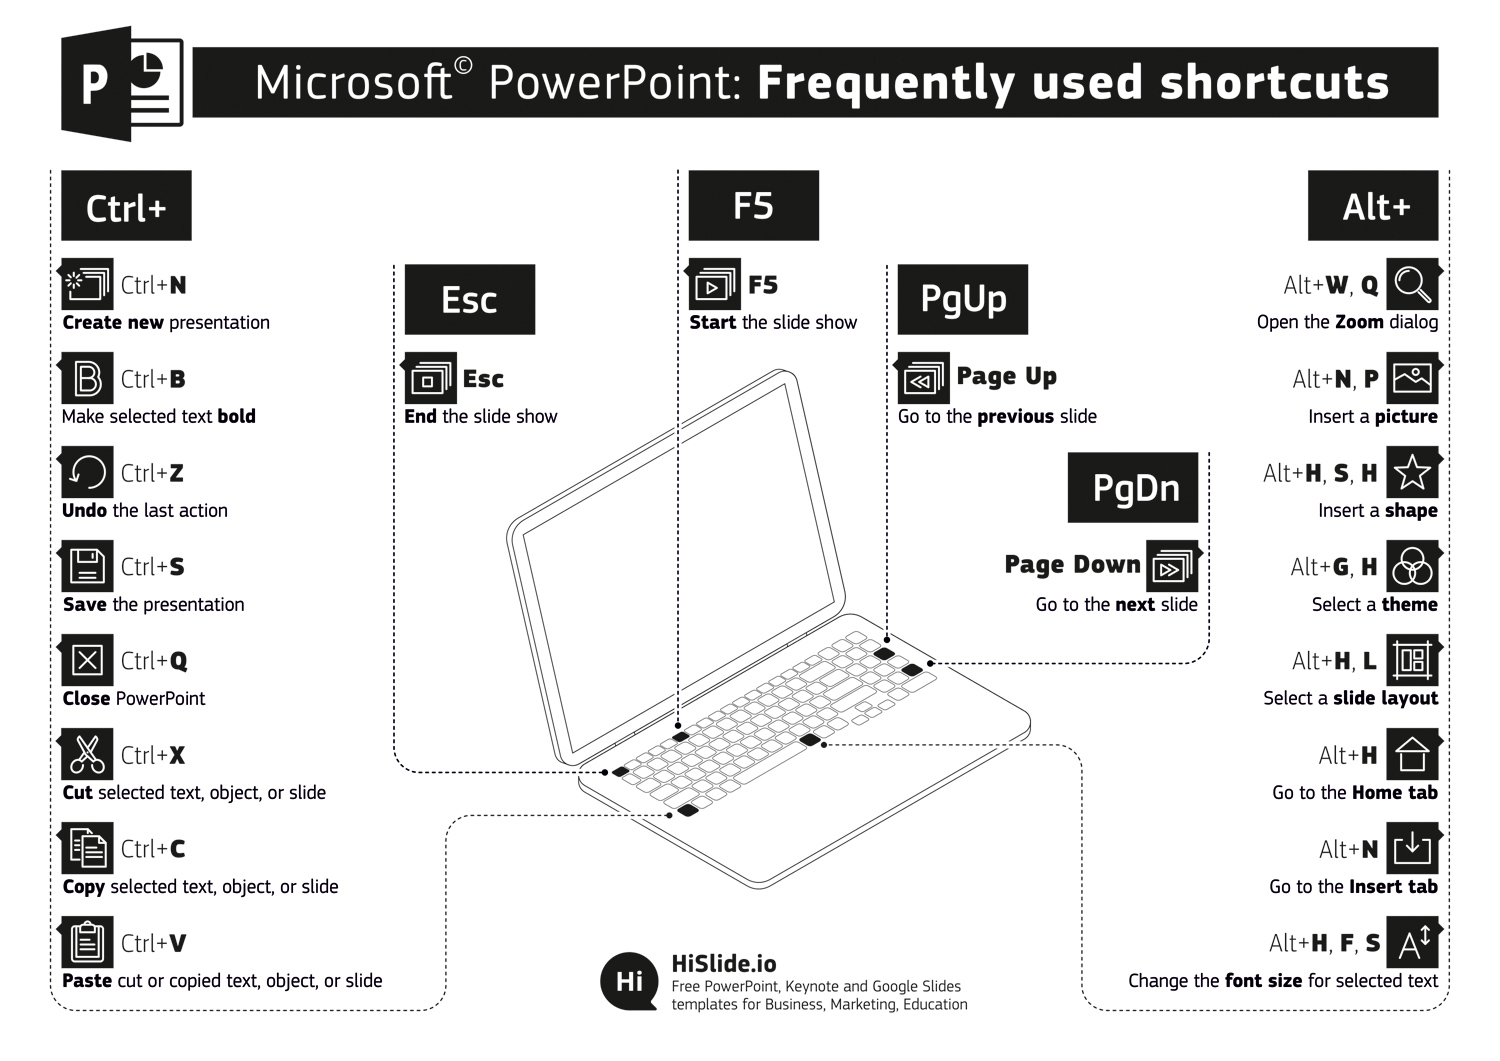 Shortcuts for PowerPoint for print